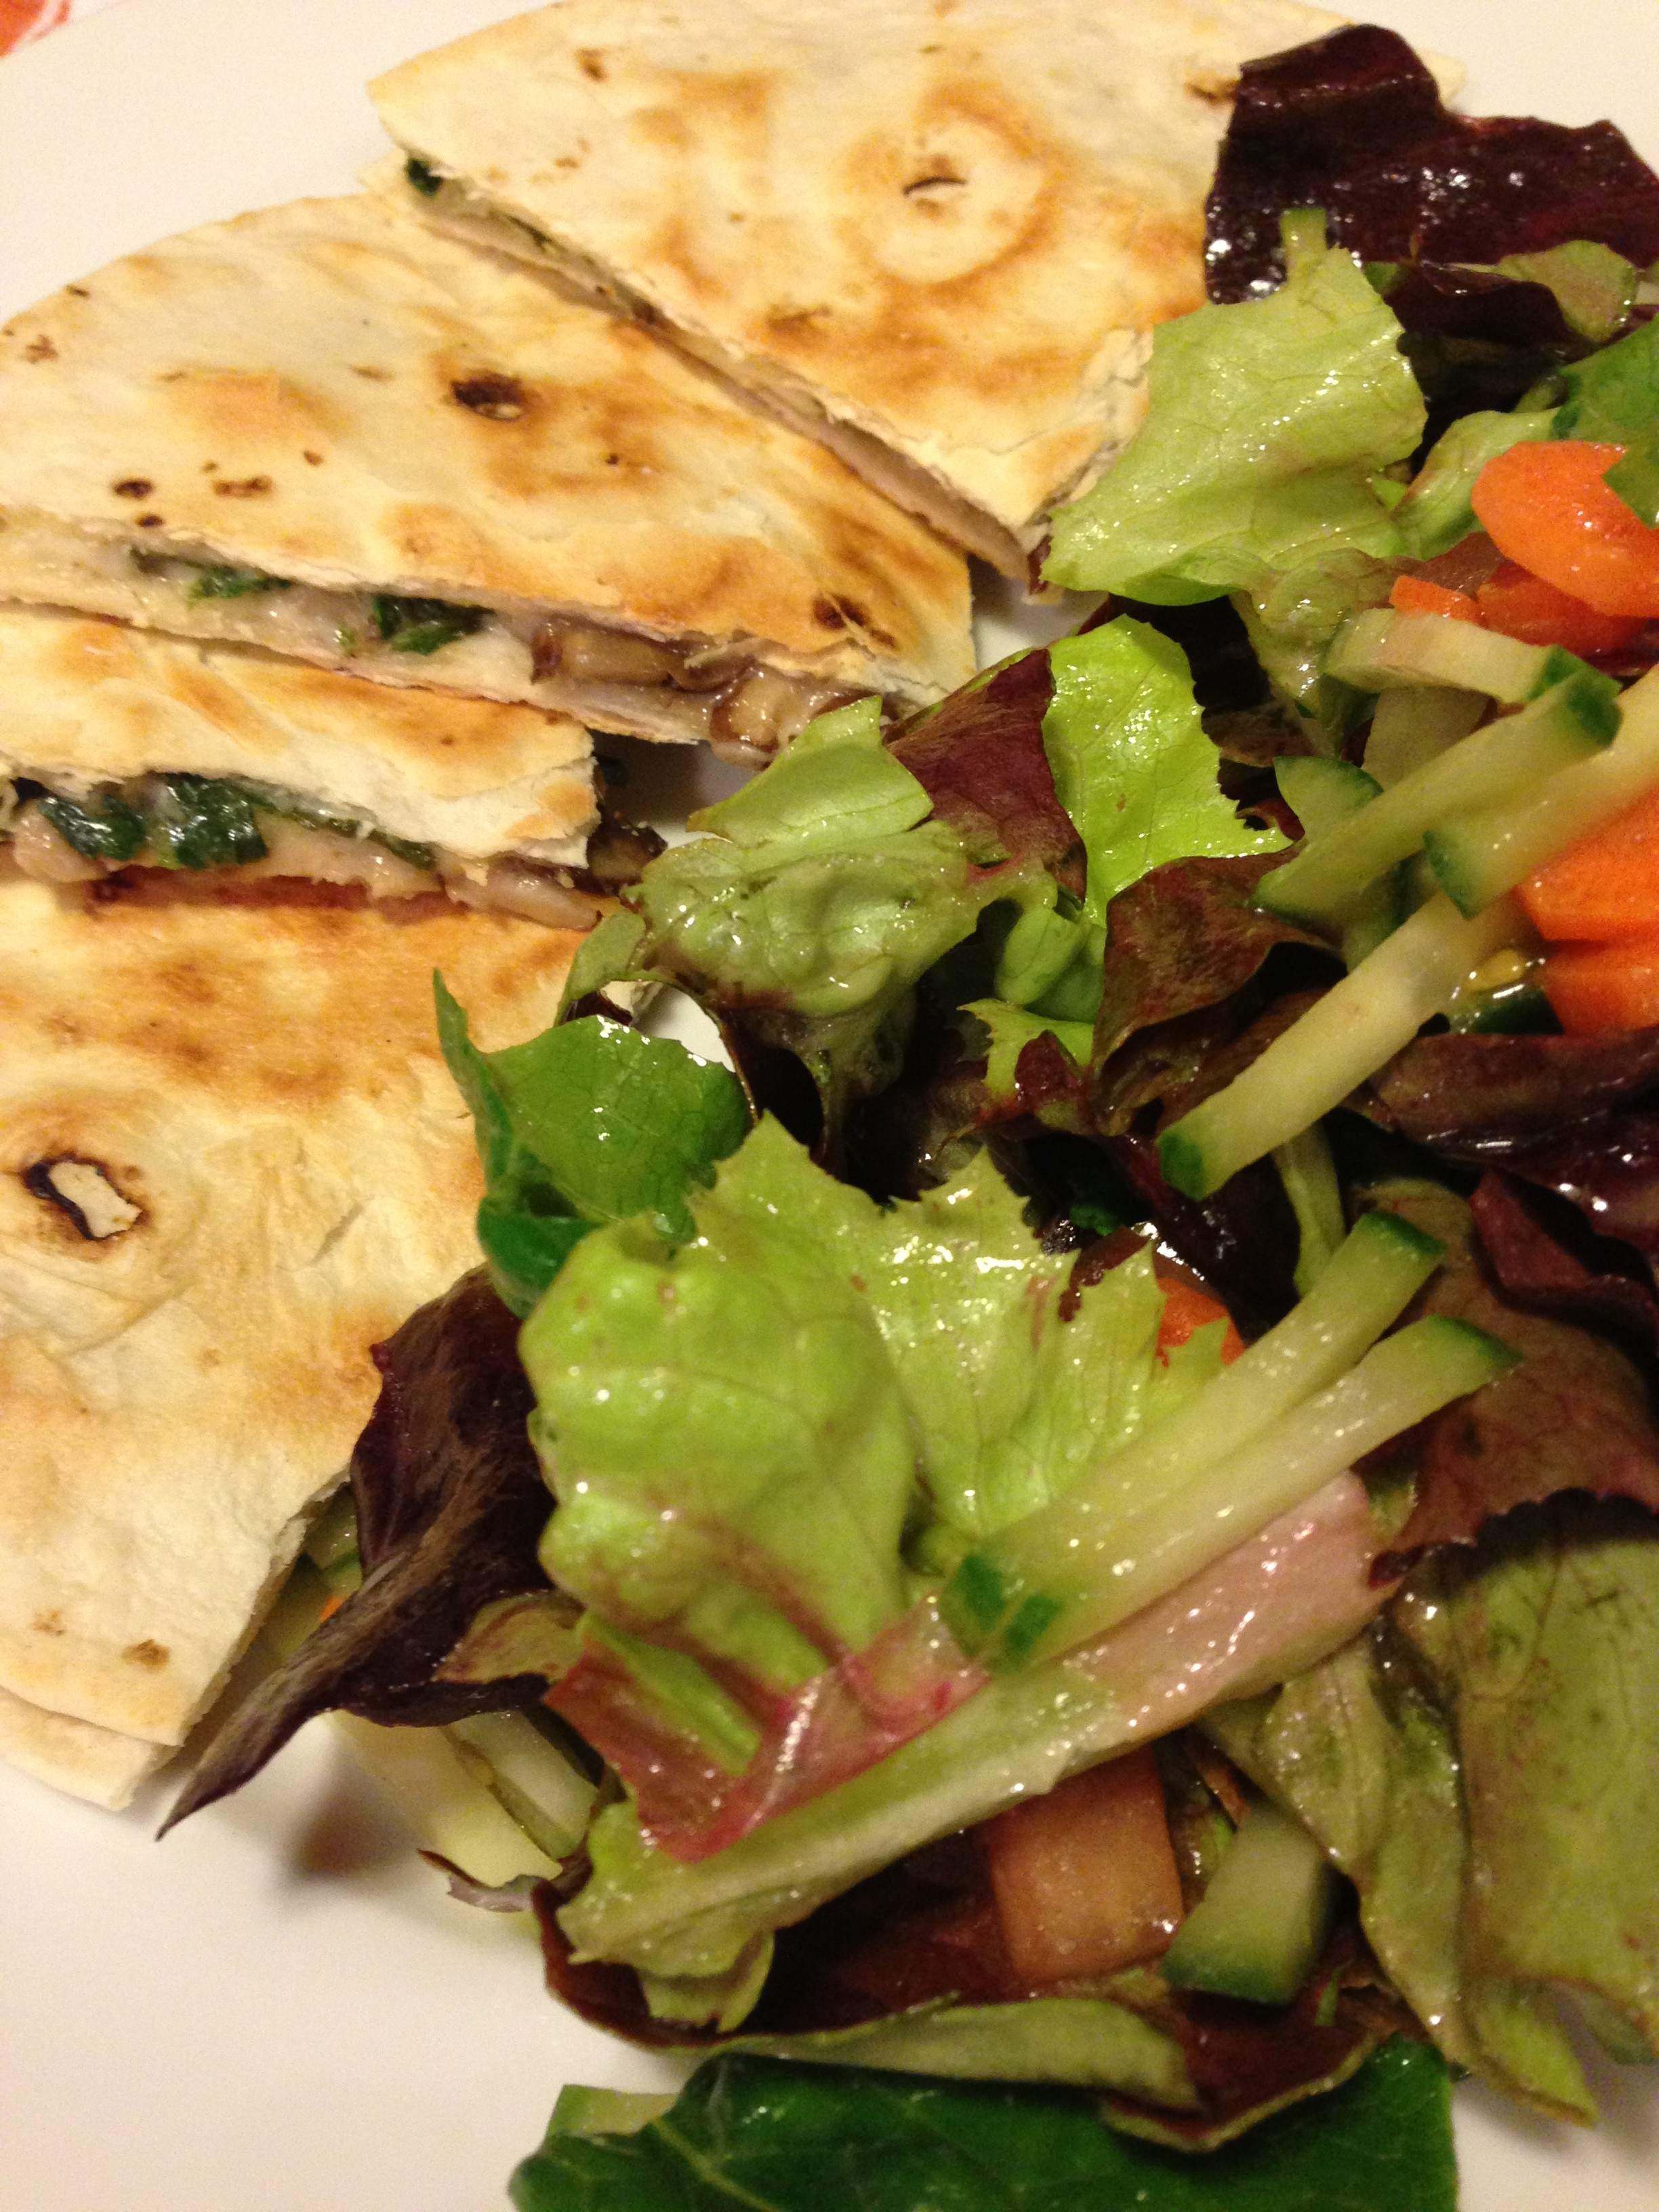 Spinach and Mushroom Quesadillas - A Food Lover's Delight